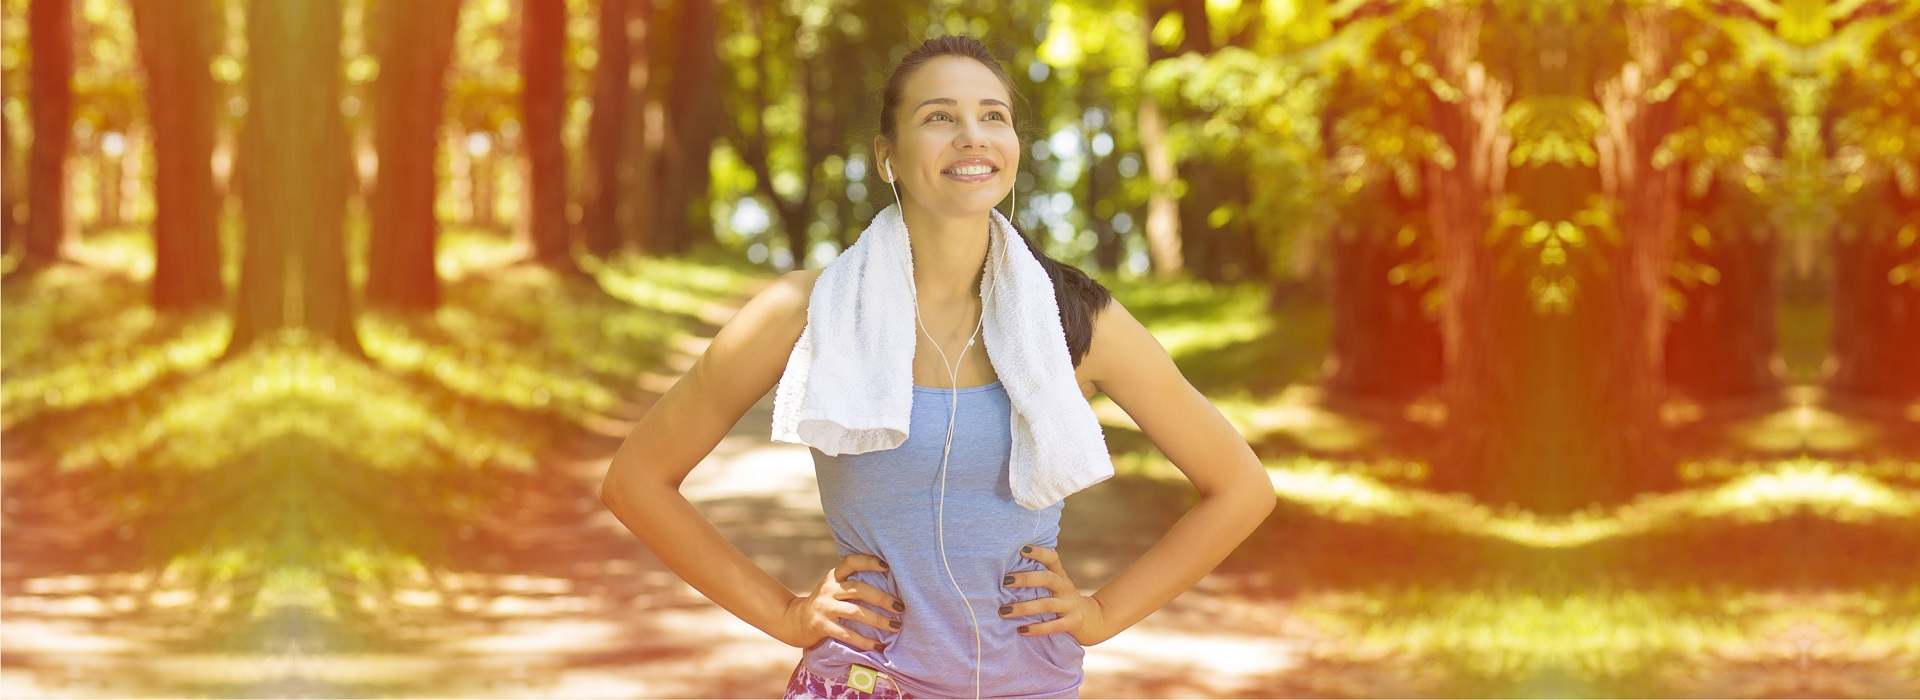 Fitness female standing happily in a forest